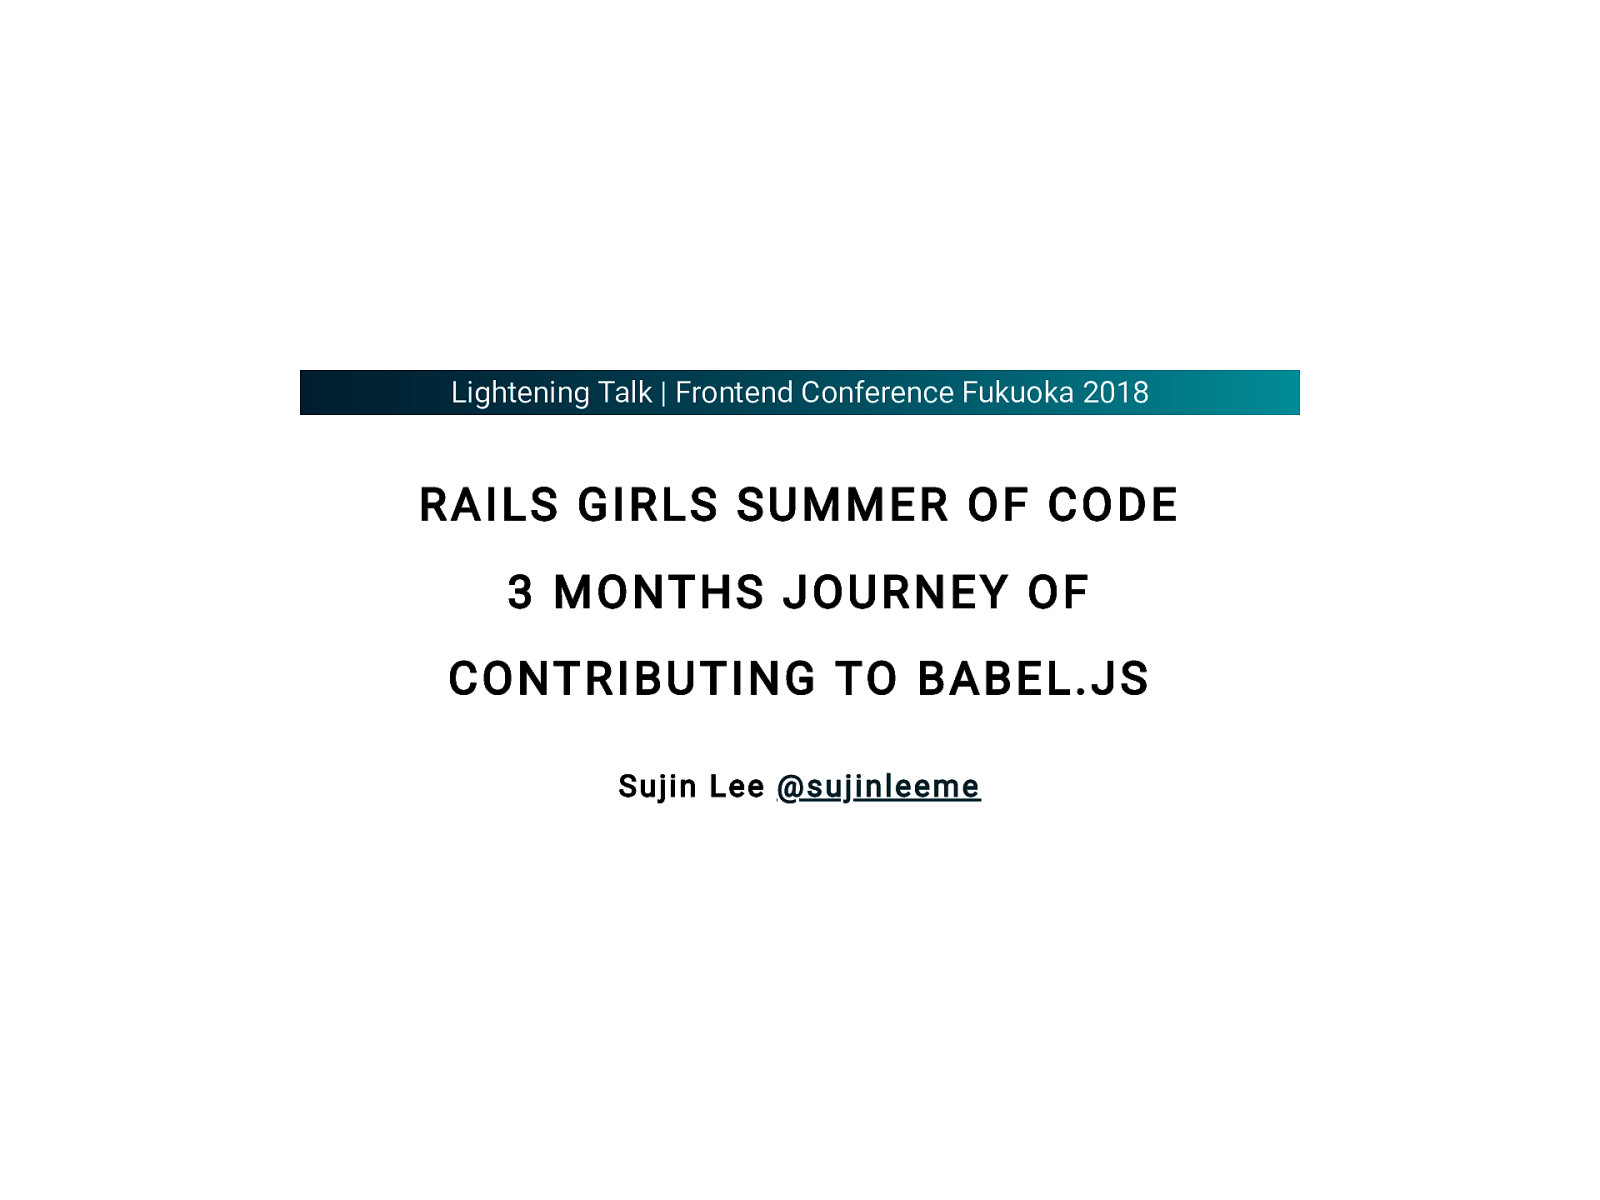 Rails Girls Summer of Code : 3 months journey of contributing to babel.js